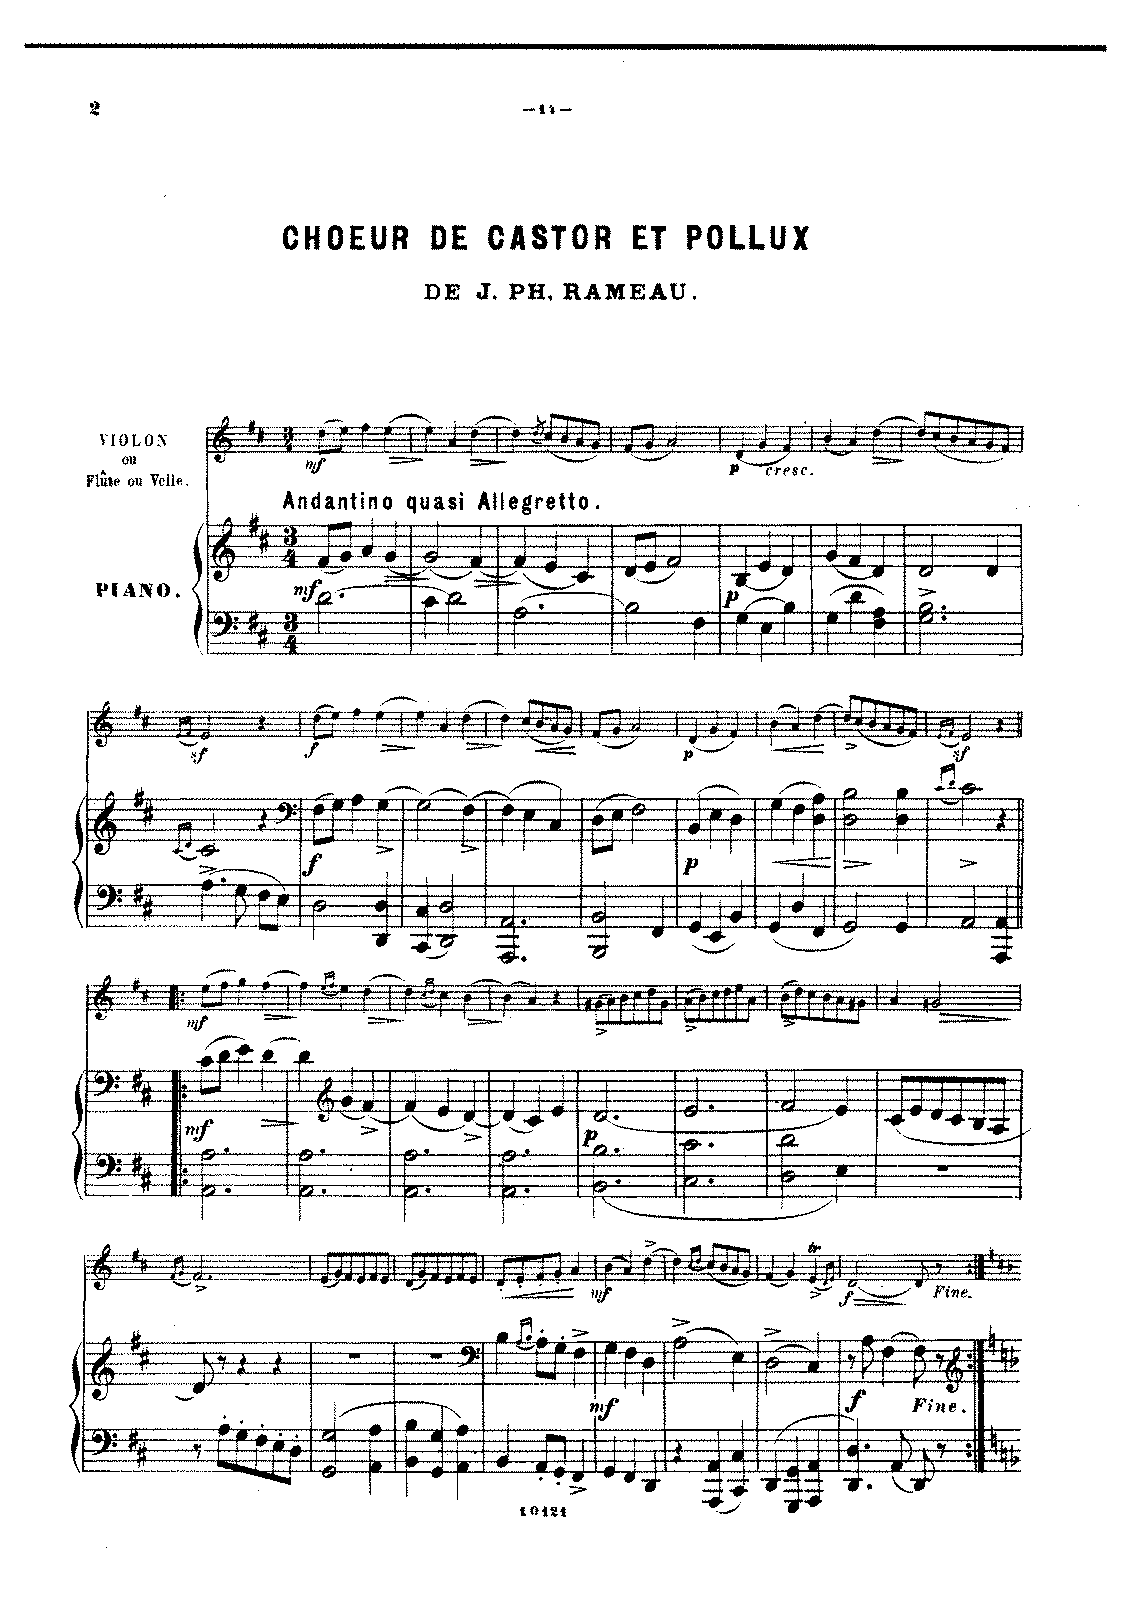 PMLP57846-Rameau - Choeur de Castor et Pollux for Cello and Piano score.pdf